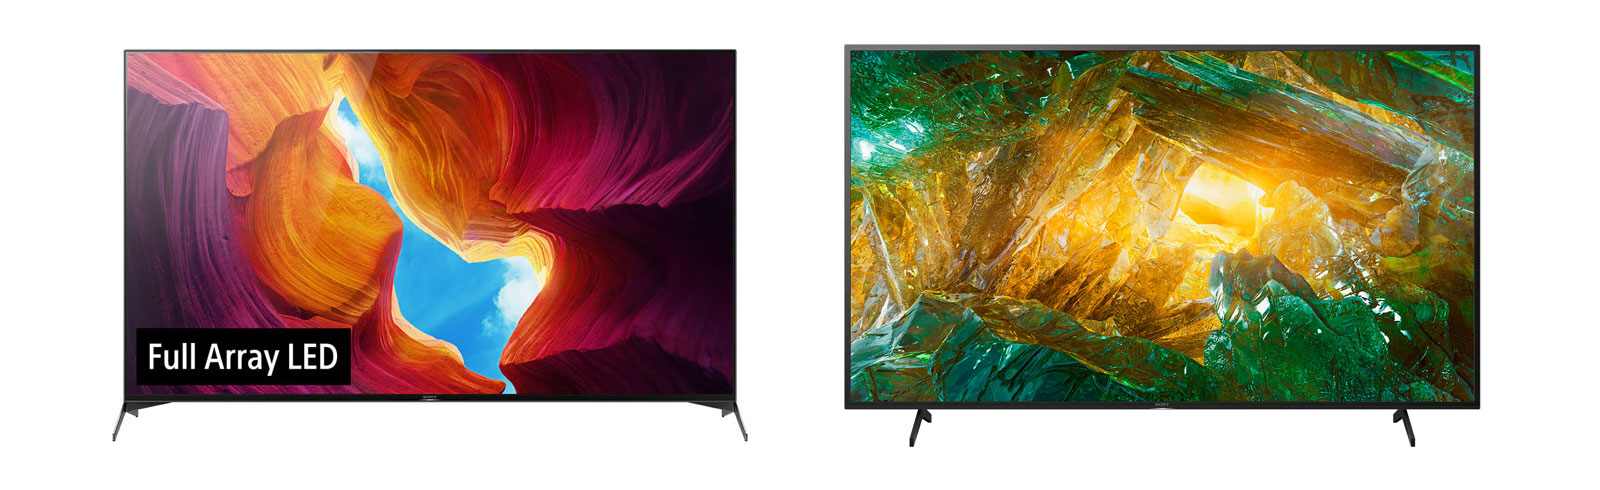 Sony USA announces the prices of the X950H and X800H TV series